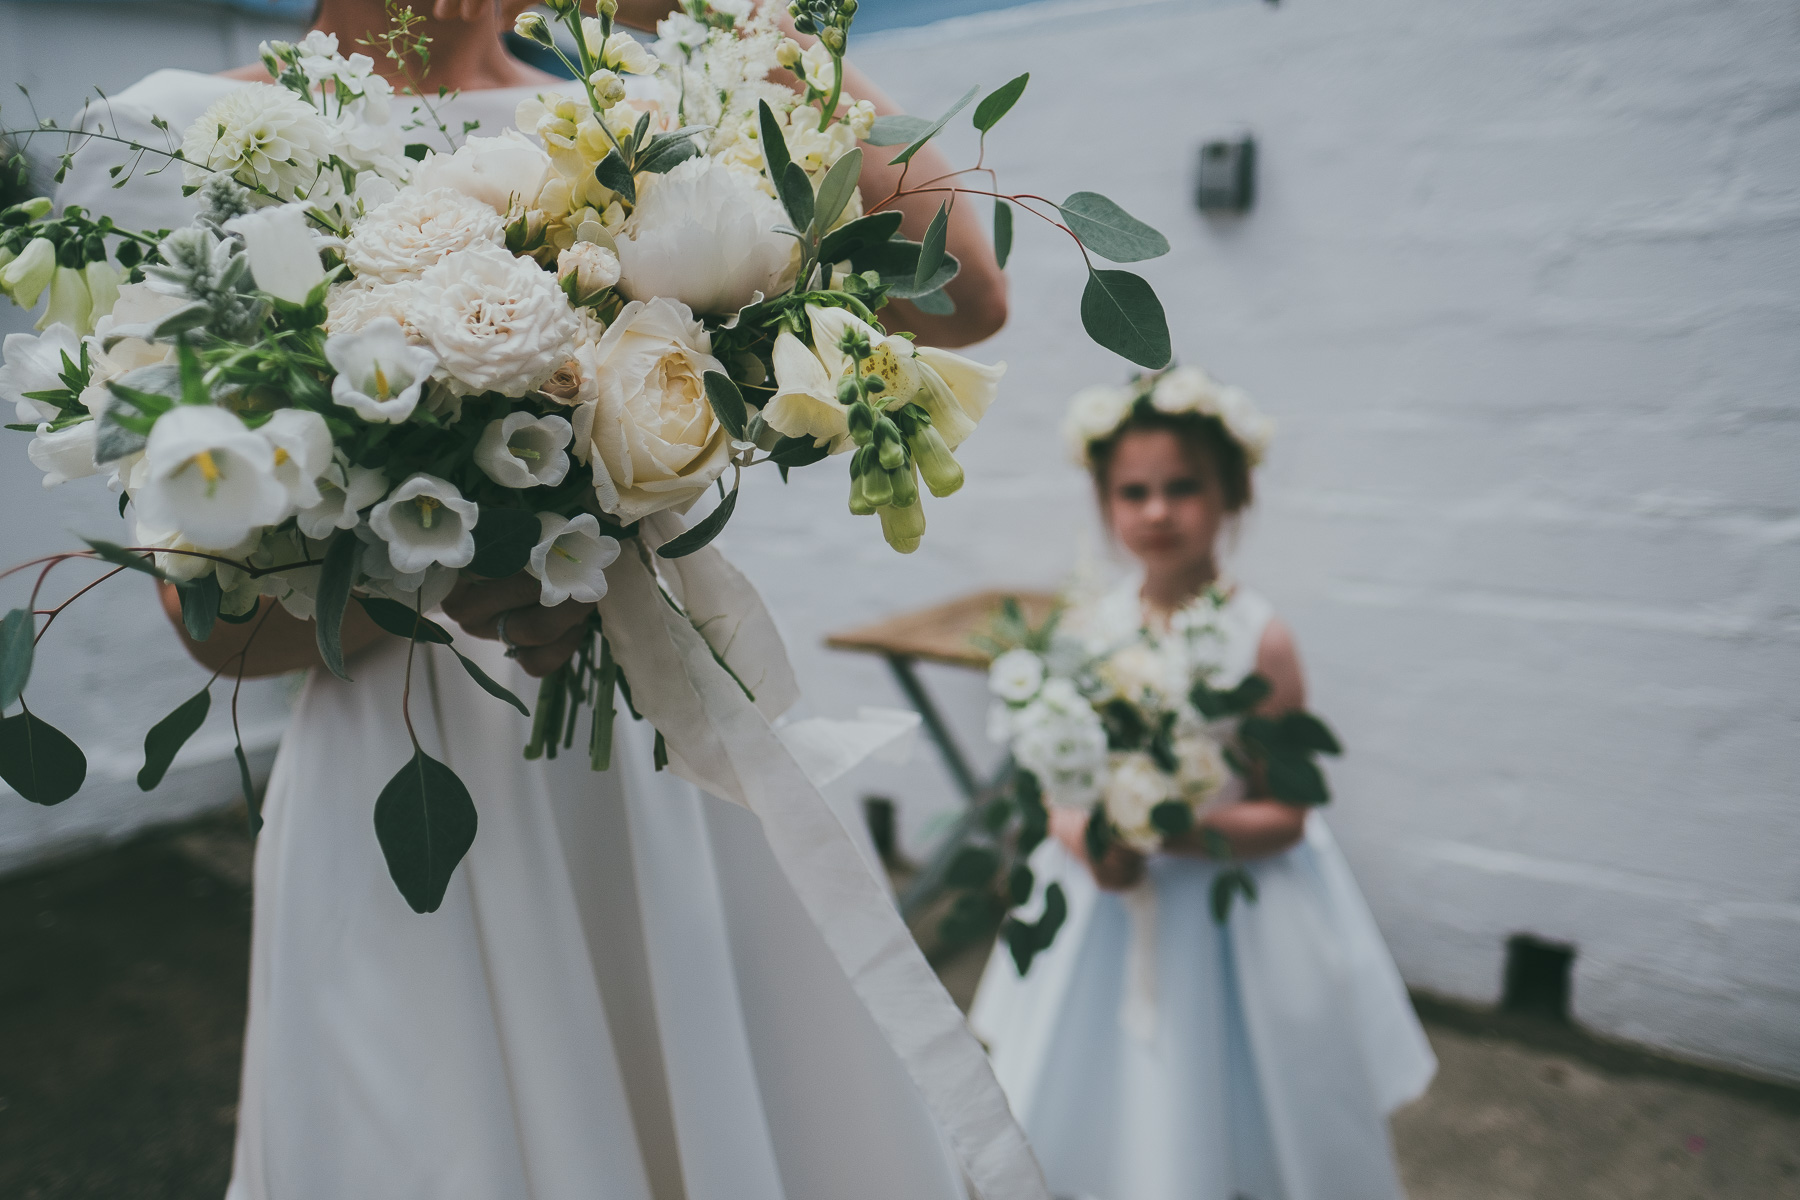 The wedding bouquets were done in neutrals, with blush blooms and greenery